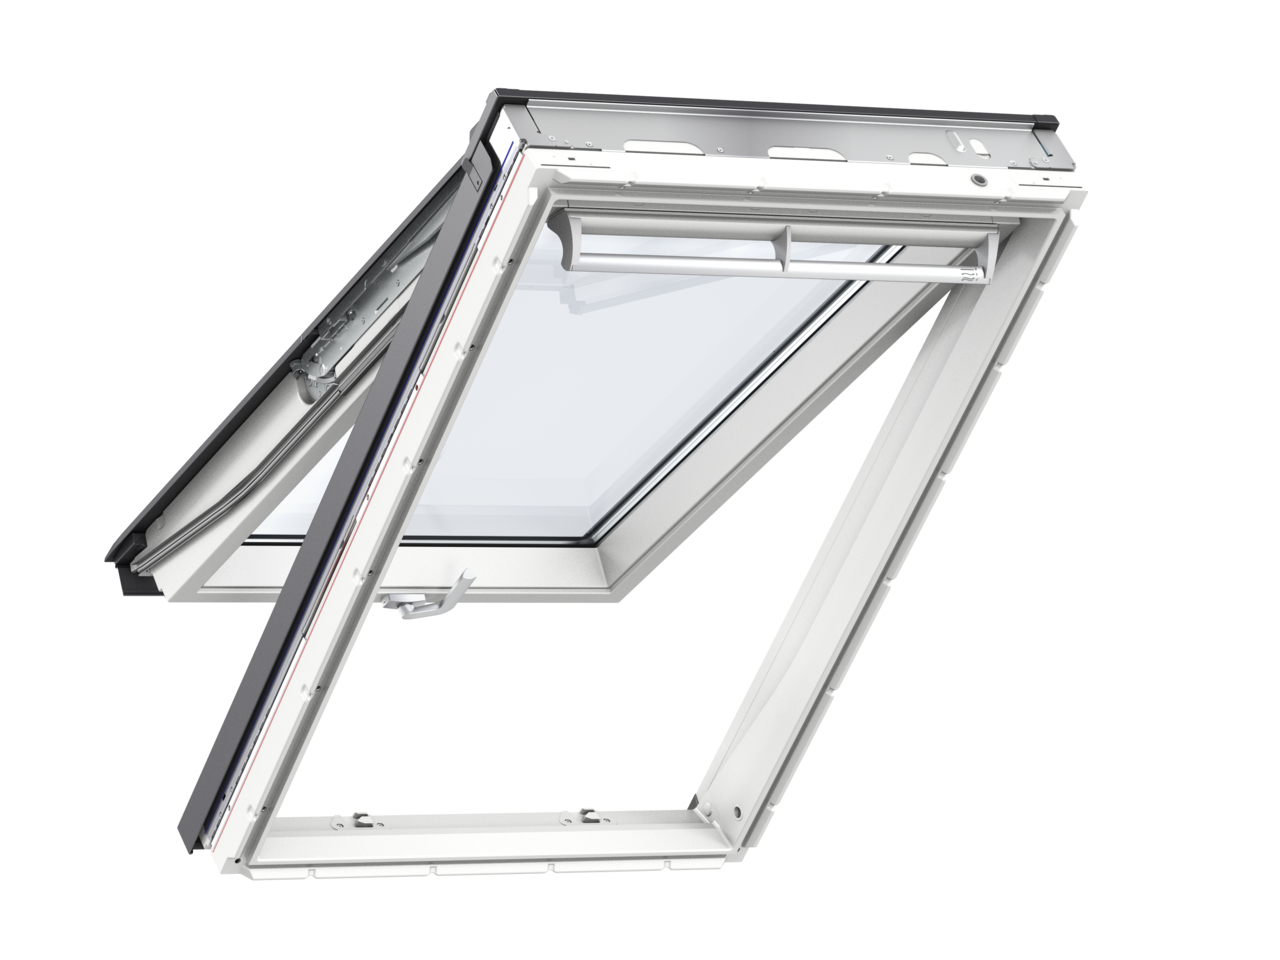 Velux GPU MK08 780 x 1400mm Top Hung 62Pane Roof Window - White Polyurethane